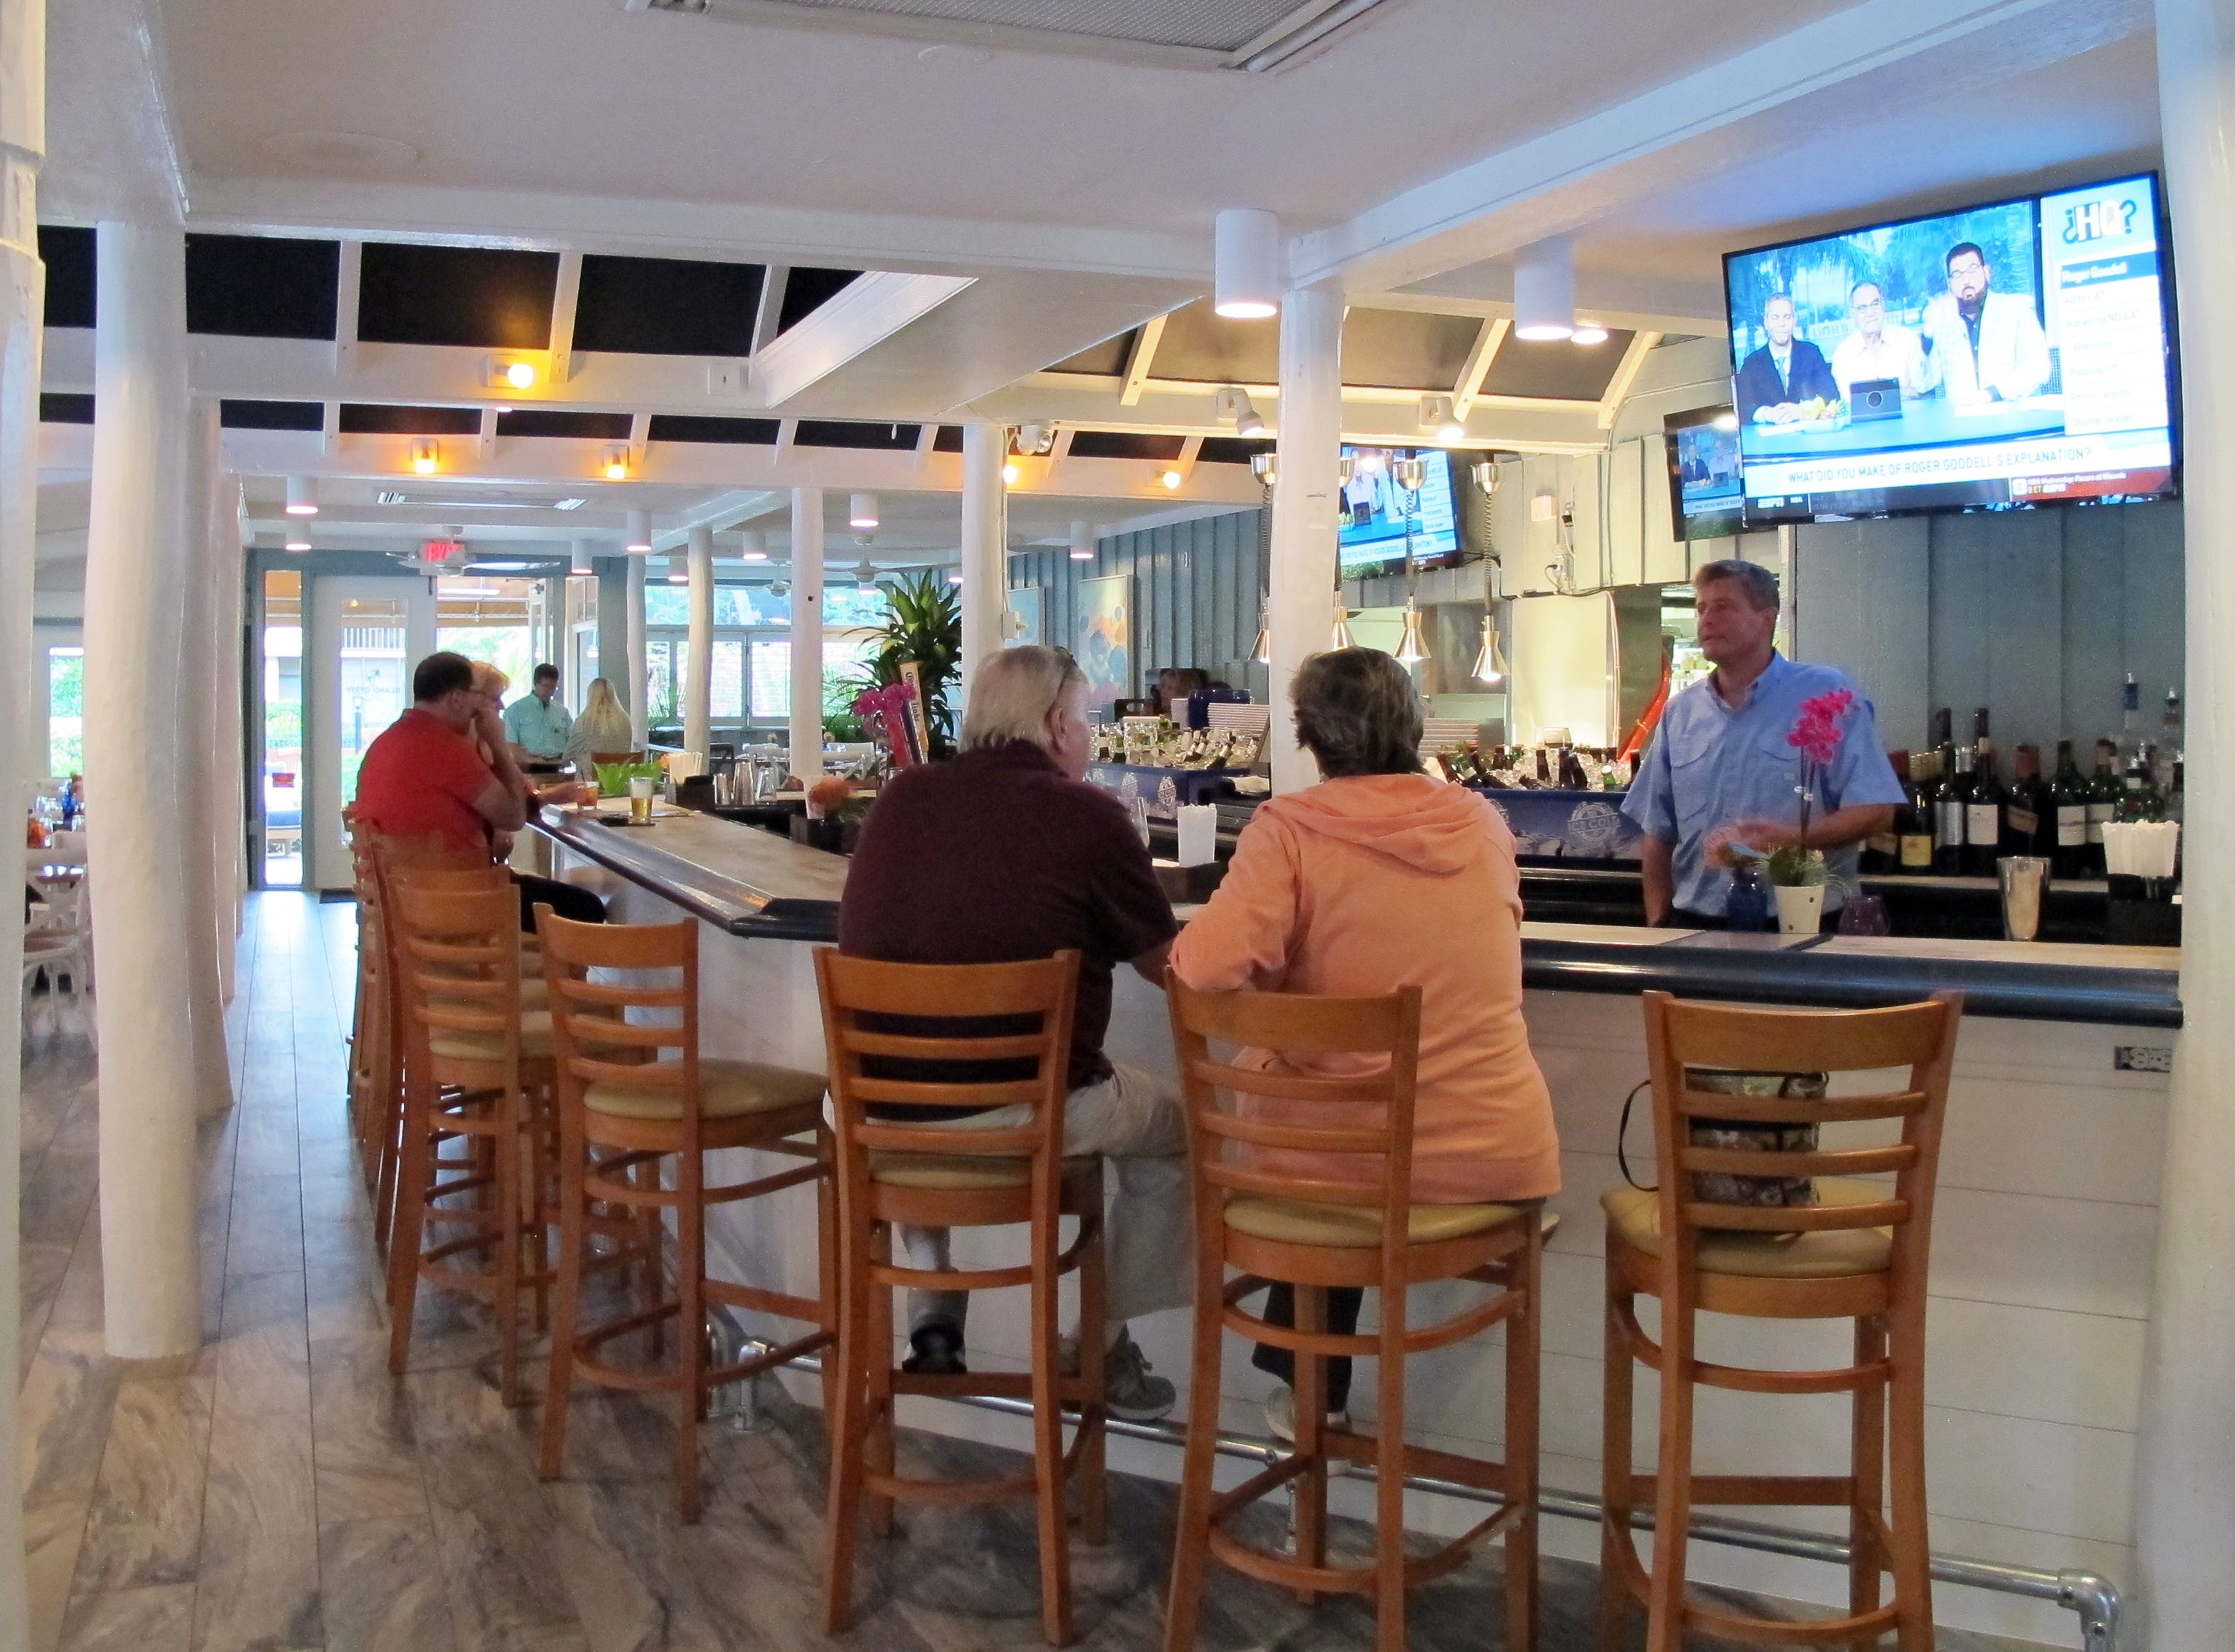 The full bar at the Island Gypsy Poolside Cafe in Park Shore Resort in Naples.